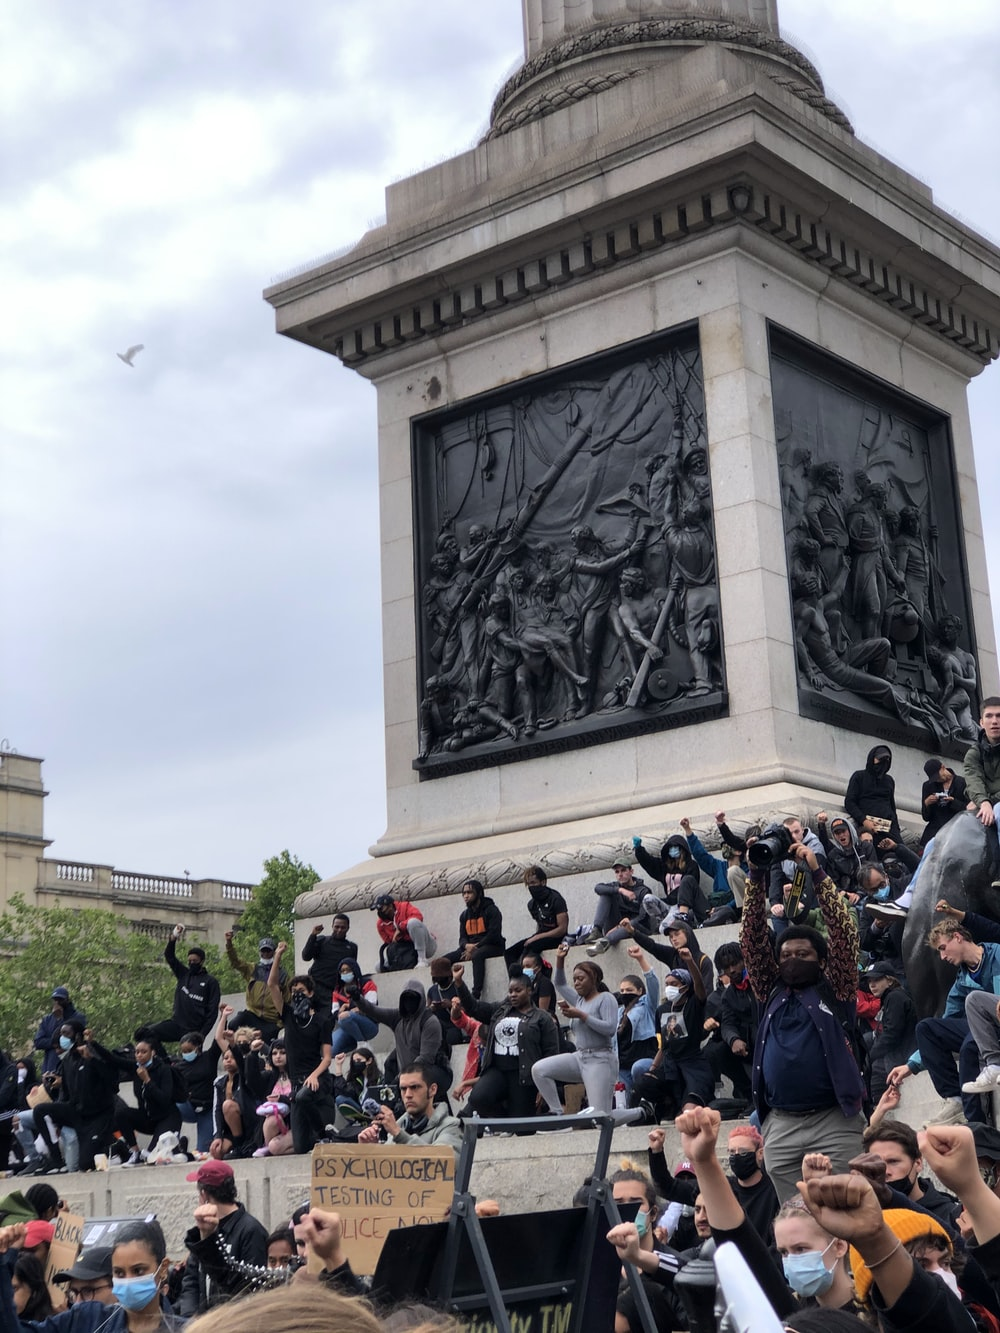 people gathering in front of gray concrete statue during daytime